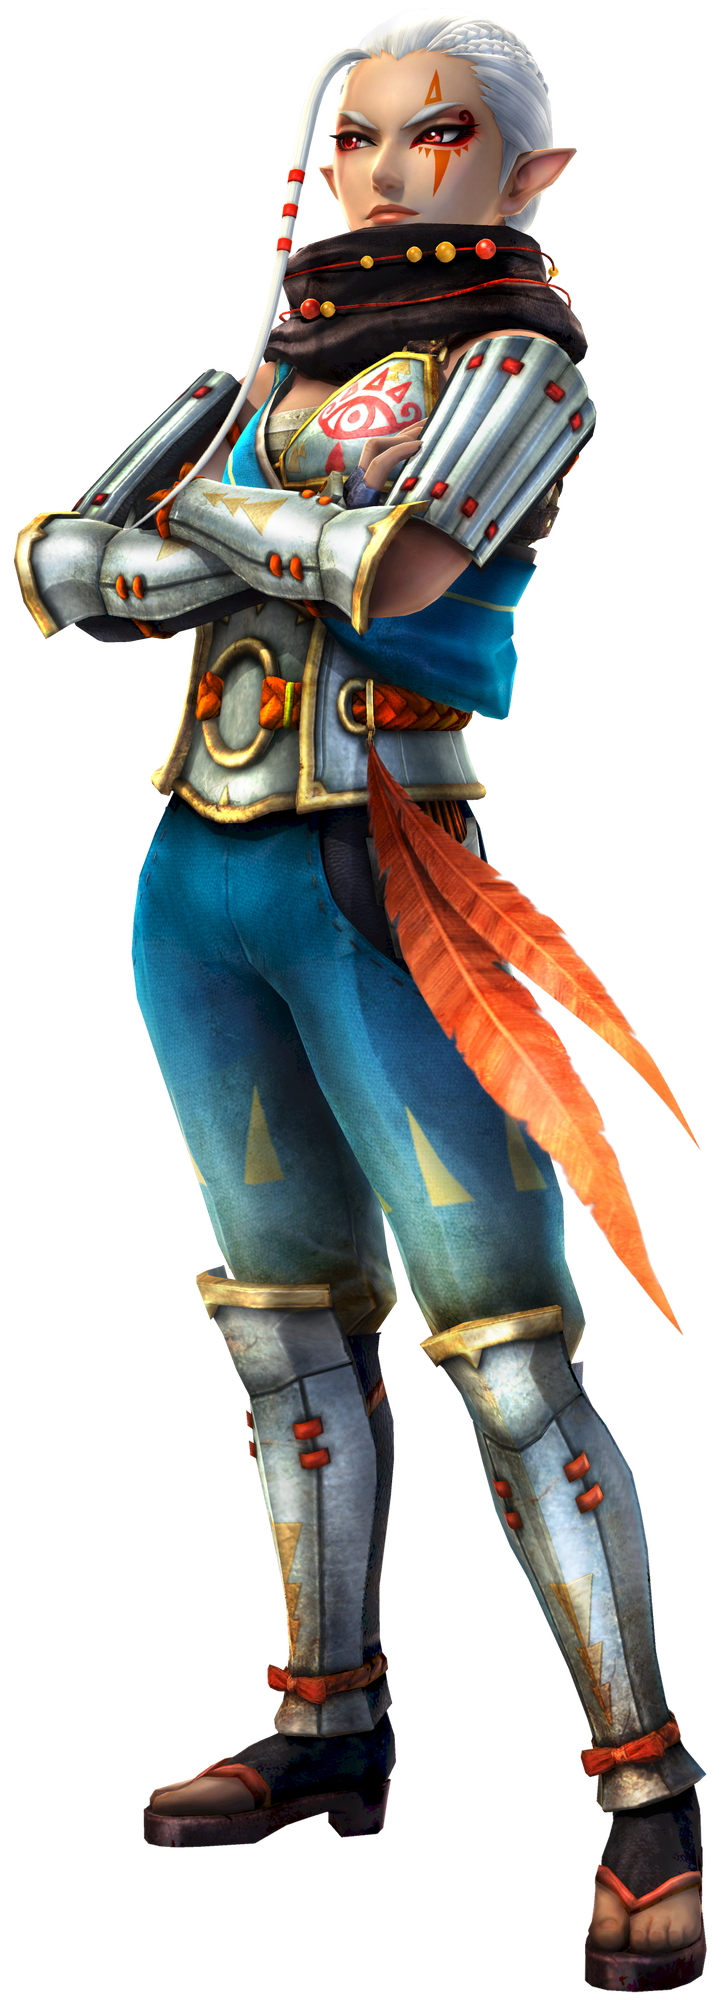 Impa Hyrule Warriors Zeldapedia Fandom